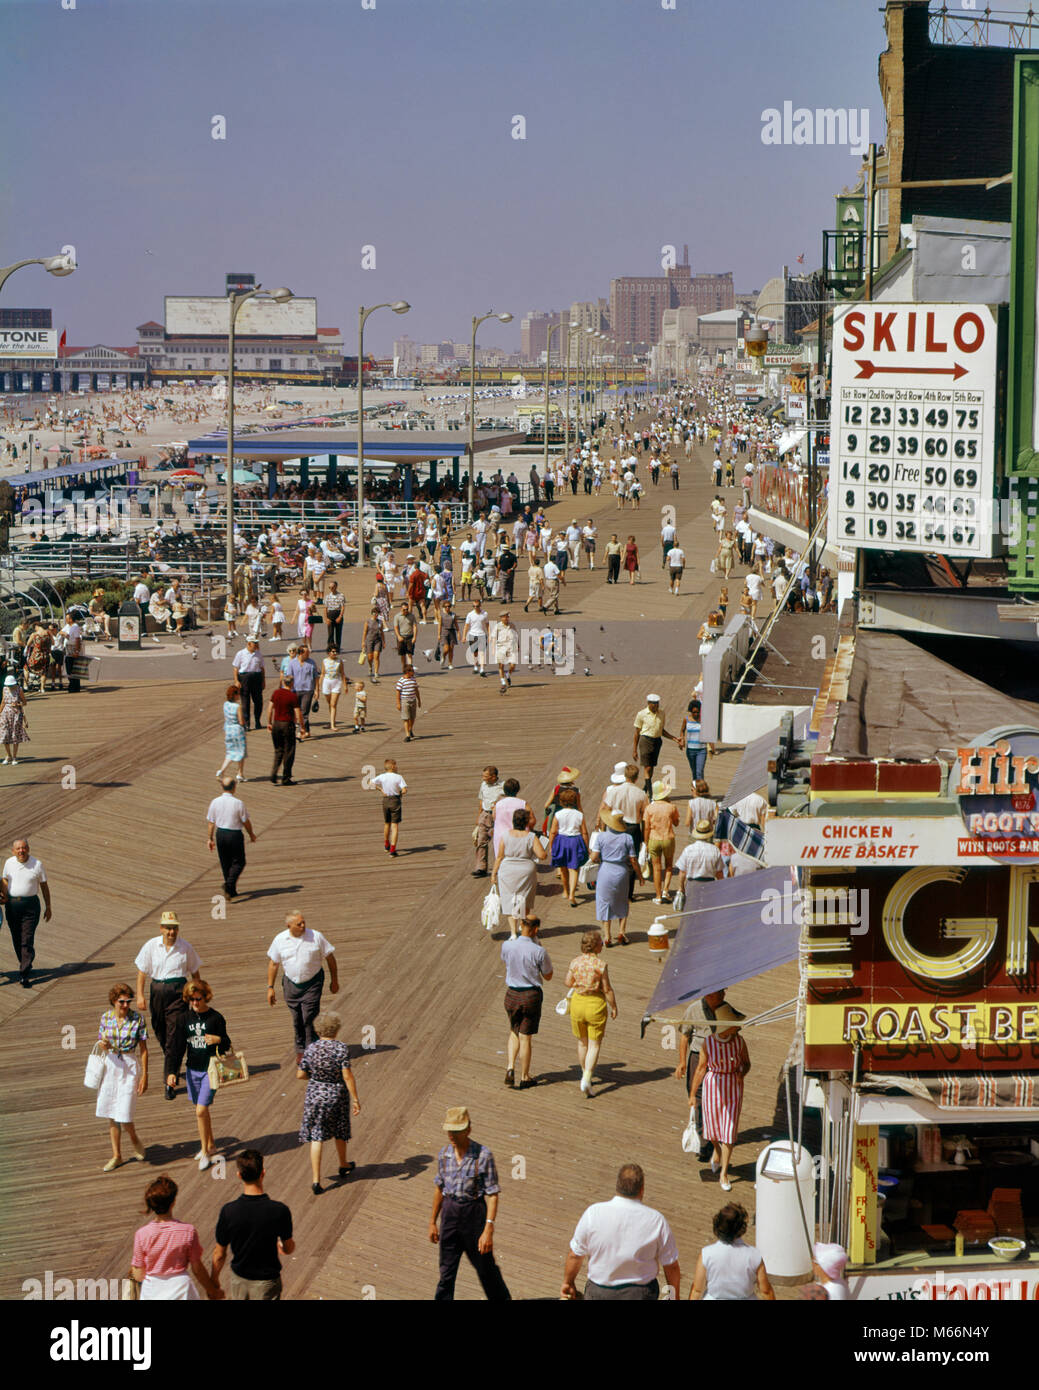 1960s FROM ABOVE LOOKING DOWN AT THE SHORE CROWD OF PEOPLE ON THE BOARDWALK OF BEACH RESORT ATLANTIC CITY NEW JERSEY - Stock Image